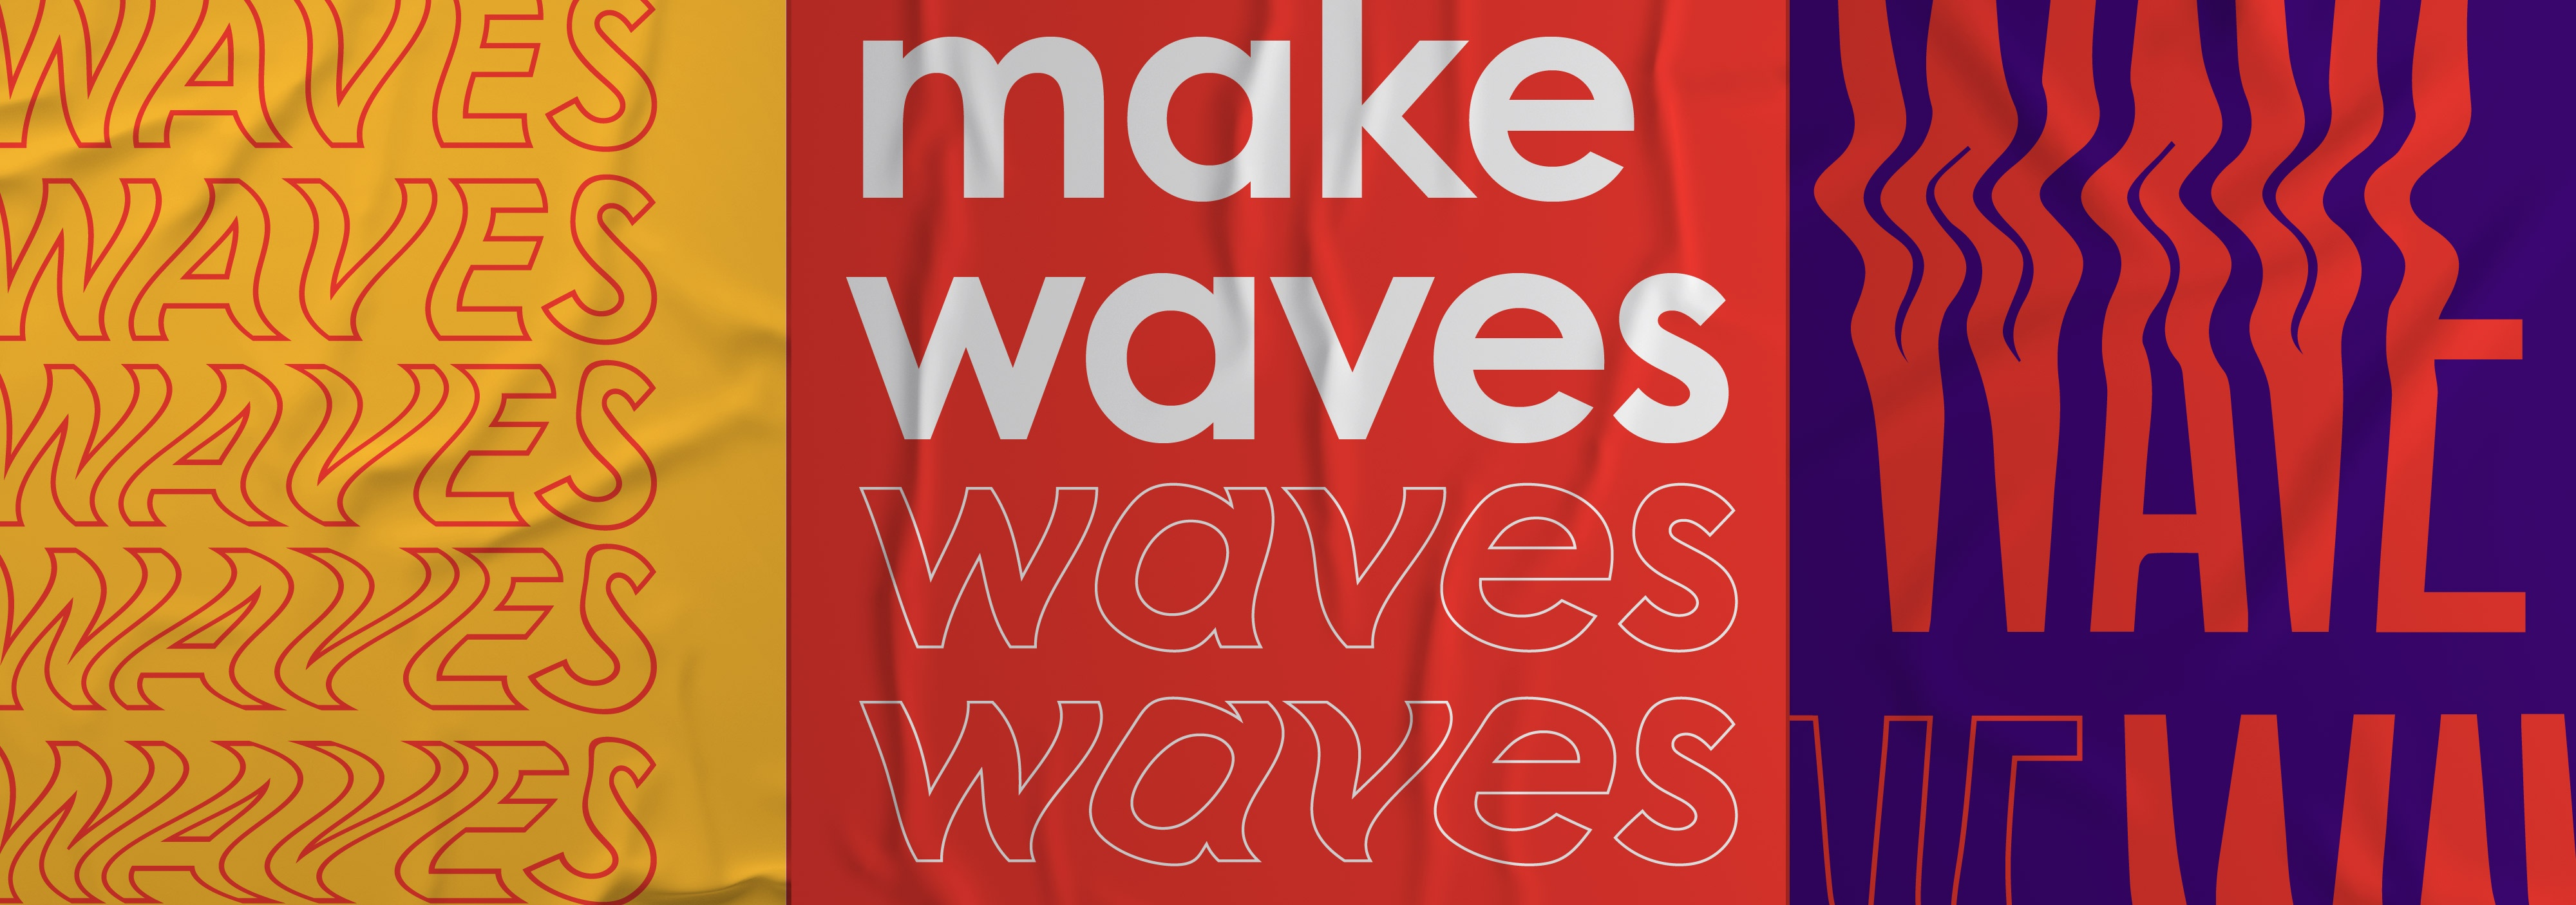 ArtsWave's Rebrand by LPK Designed to Make Waves